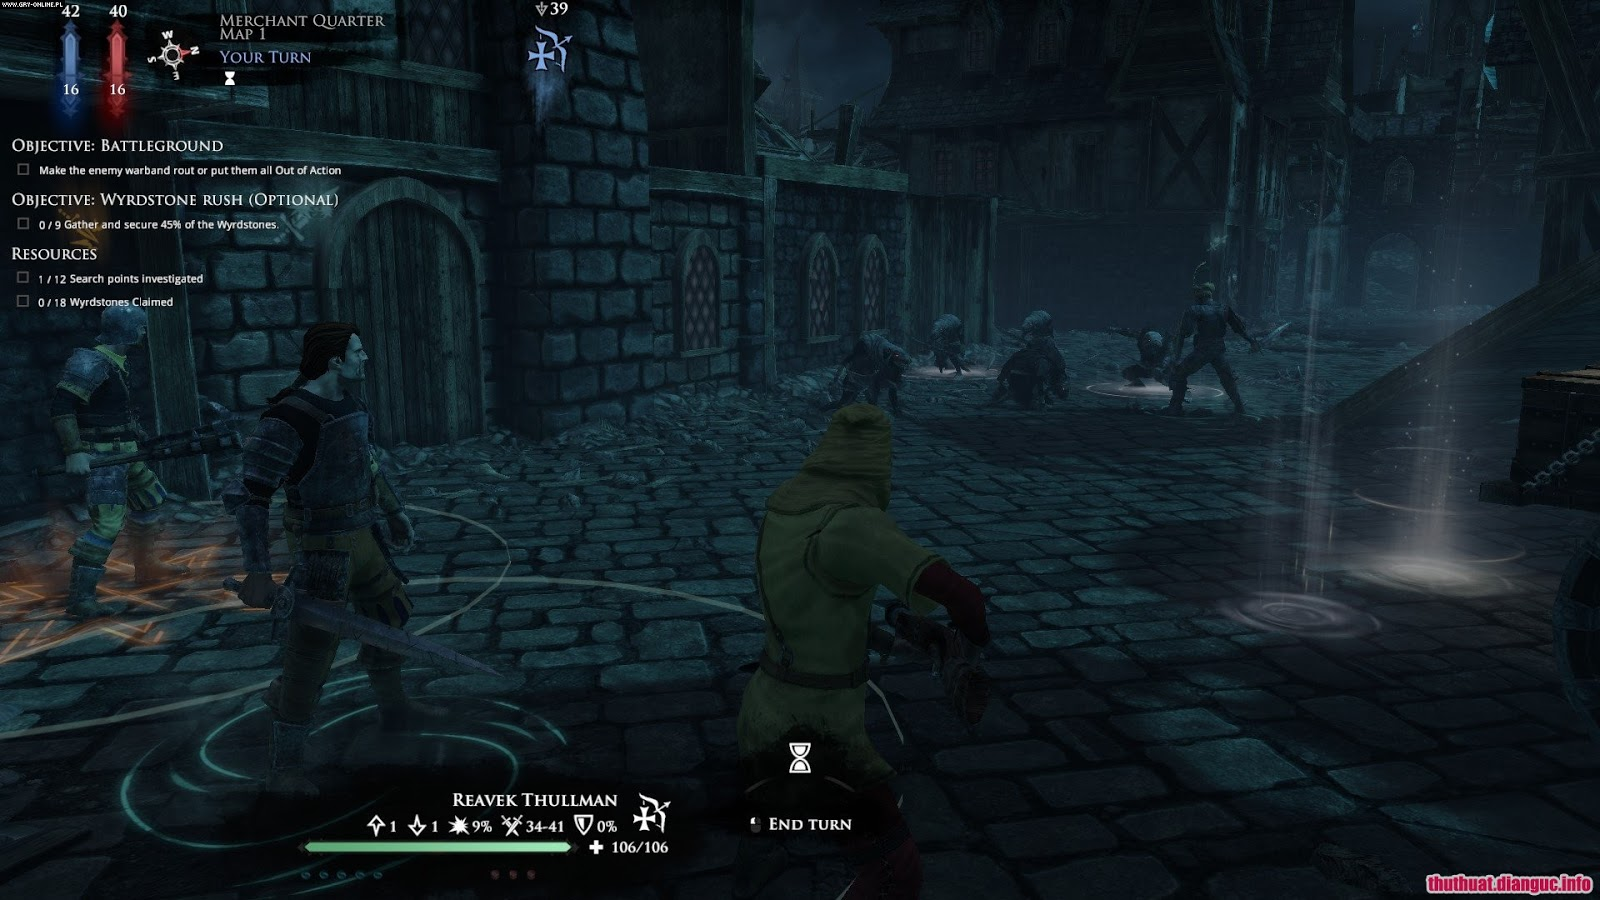 Tải Game Mordheim: City of the Damned - Undead Full Crack, Mordheim: City of the Damned Free Download, Tải game Mordheim: City of the Damned full crack miễn phí